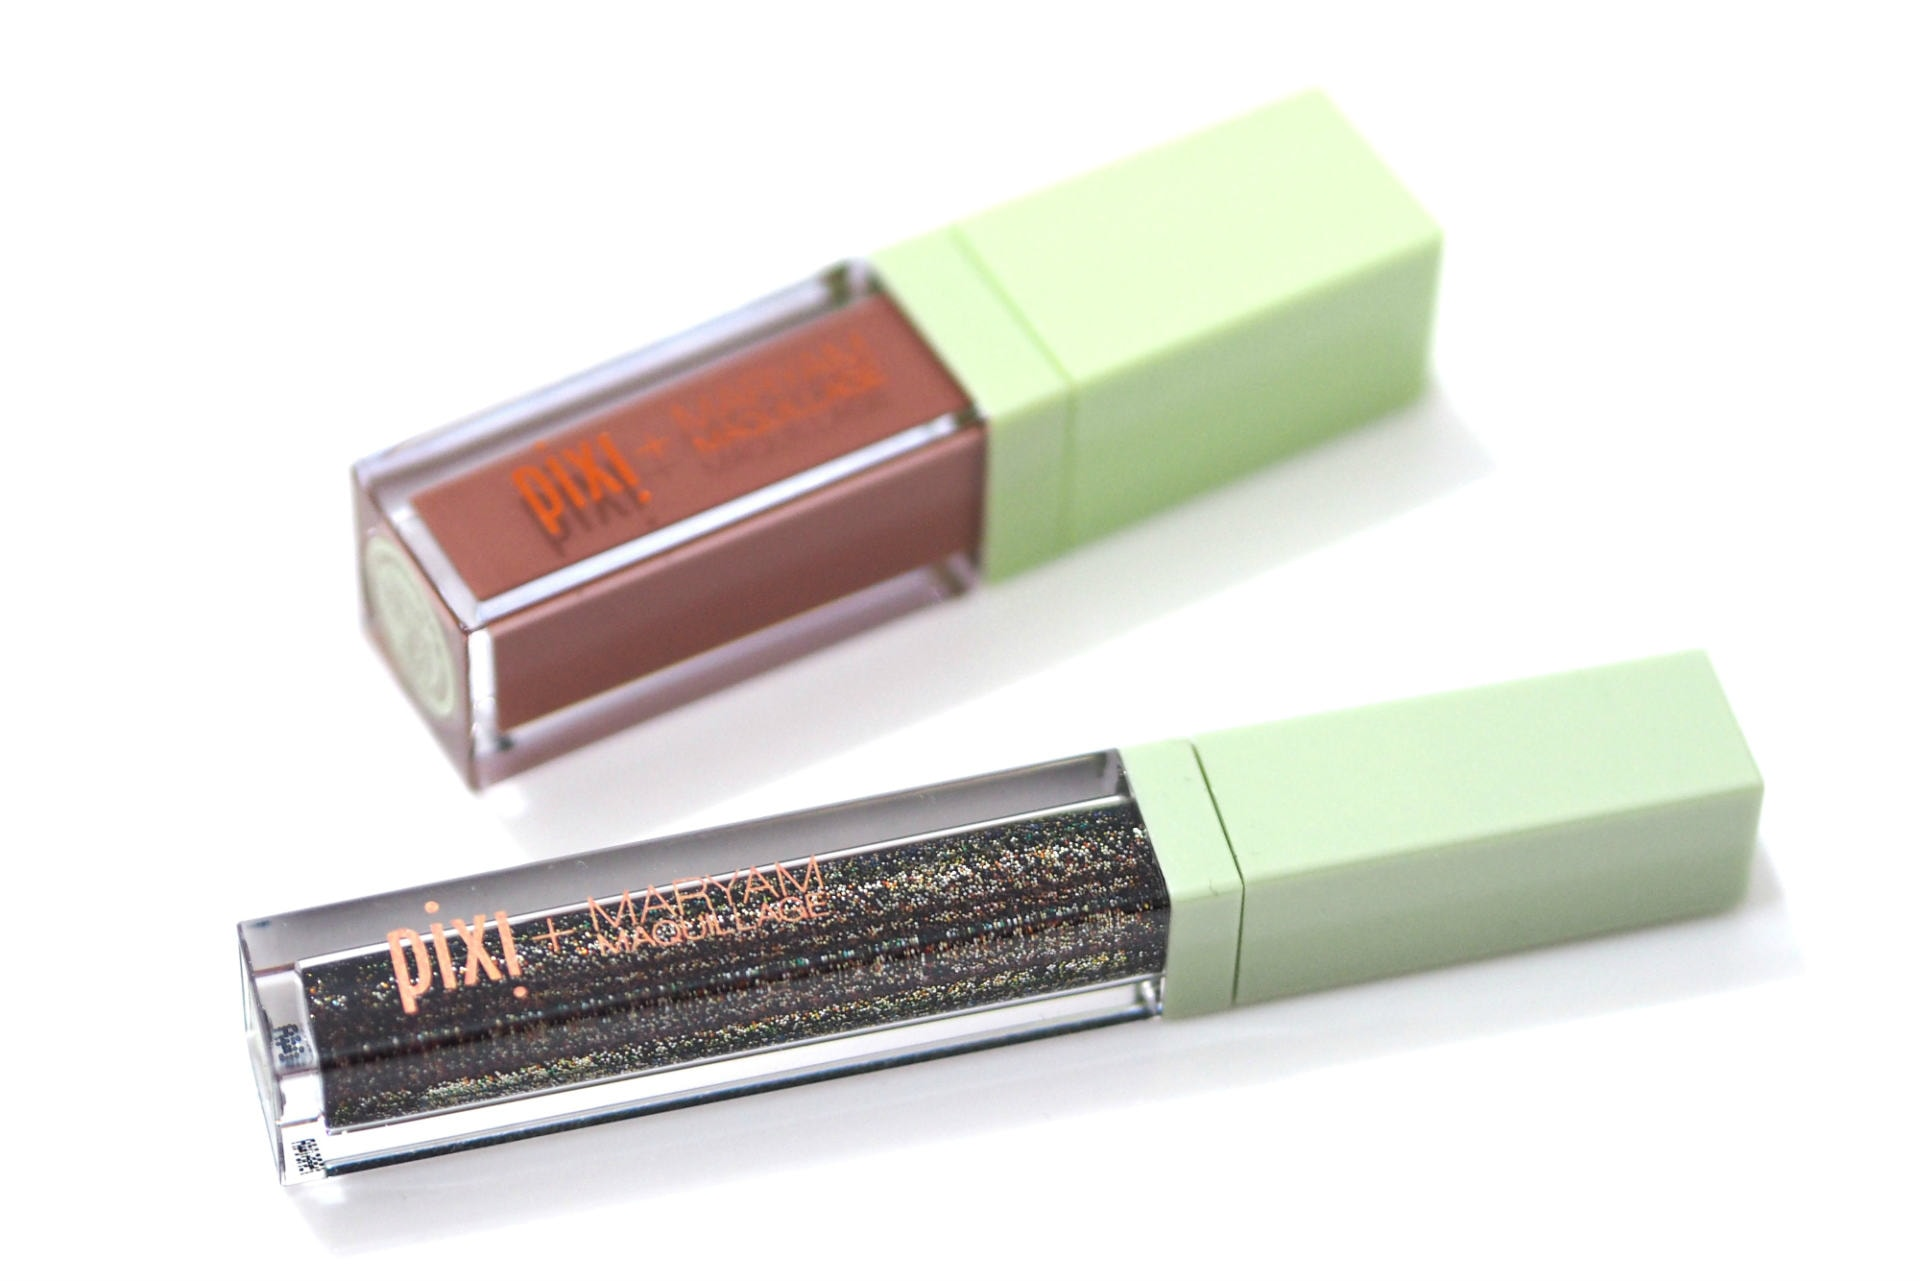 Pixi Lit Kits - Day and Night Review and Swatches